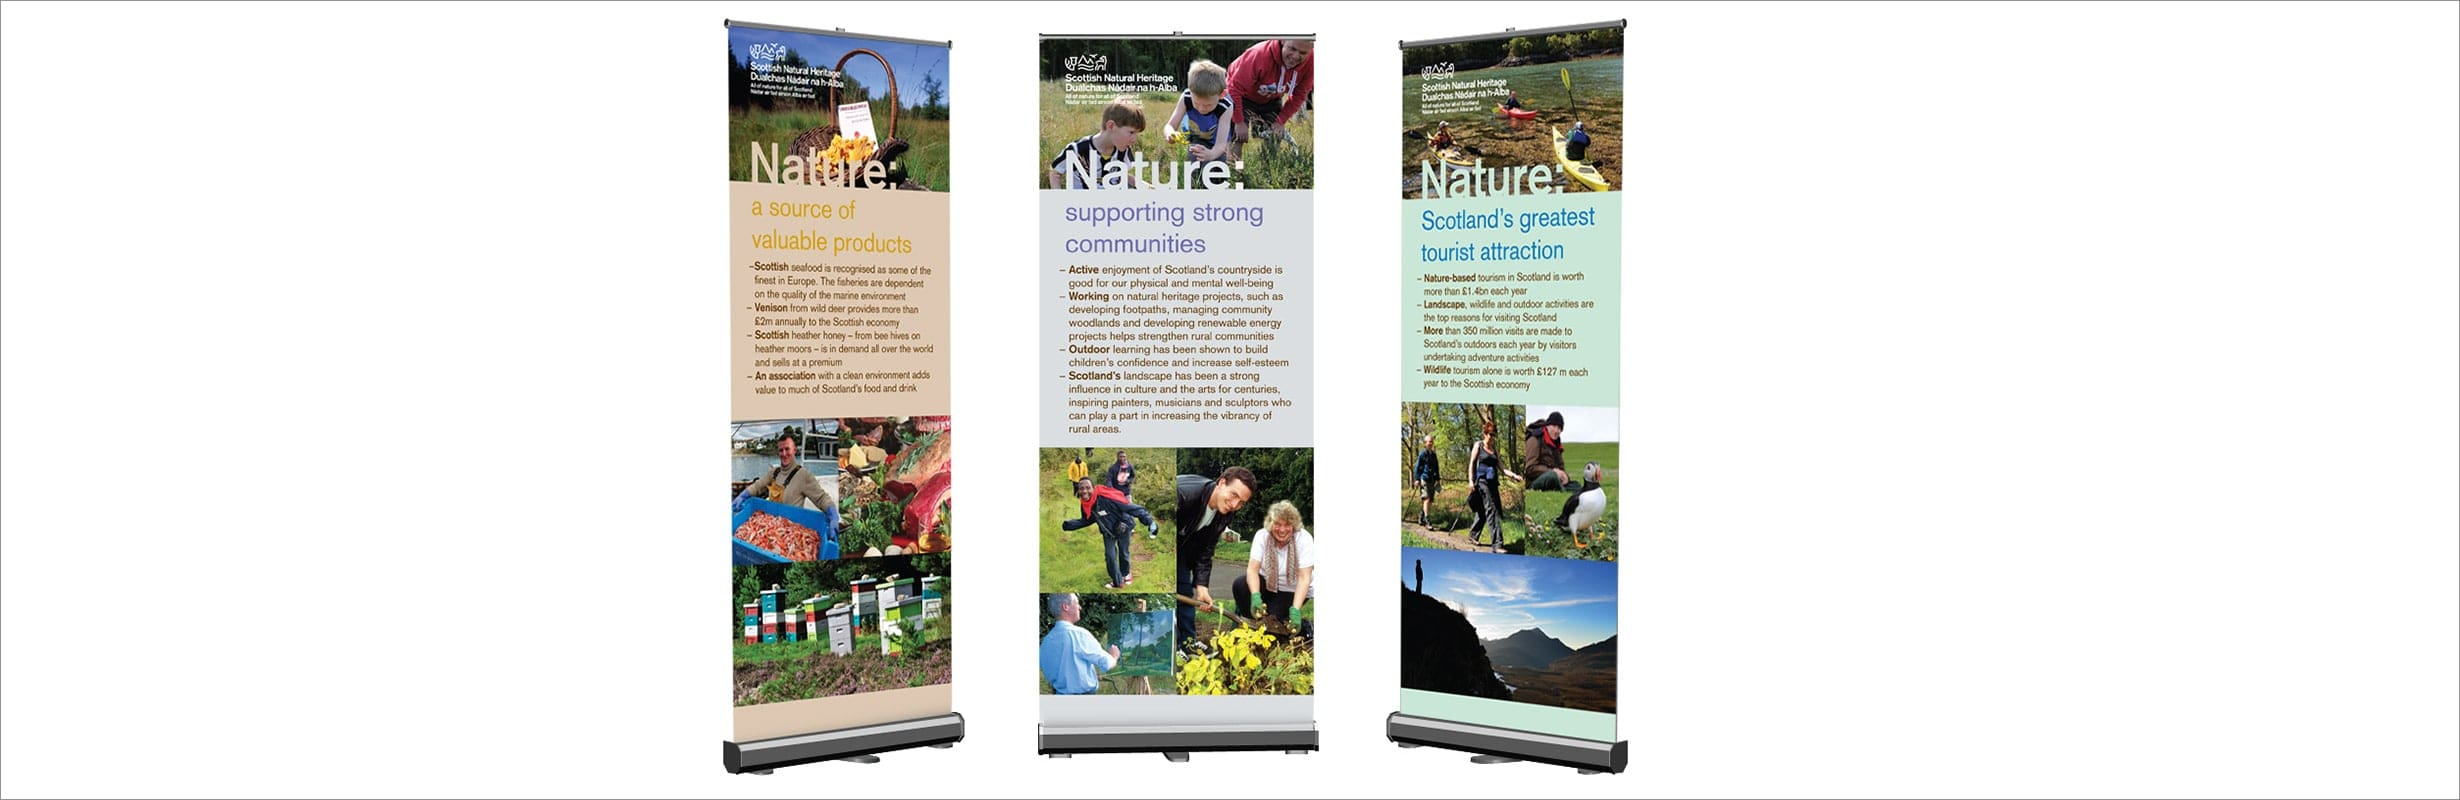 Outdoor Banner Design for Scottish Natural Heritage.